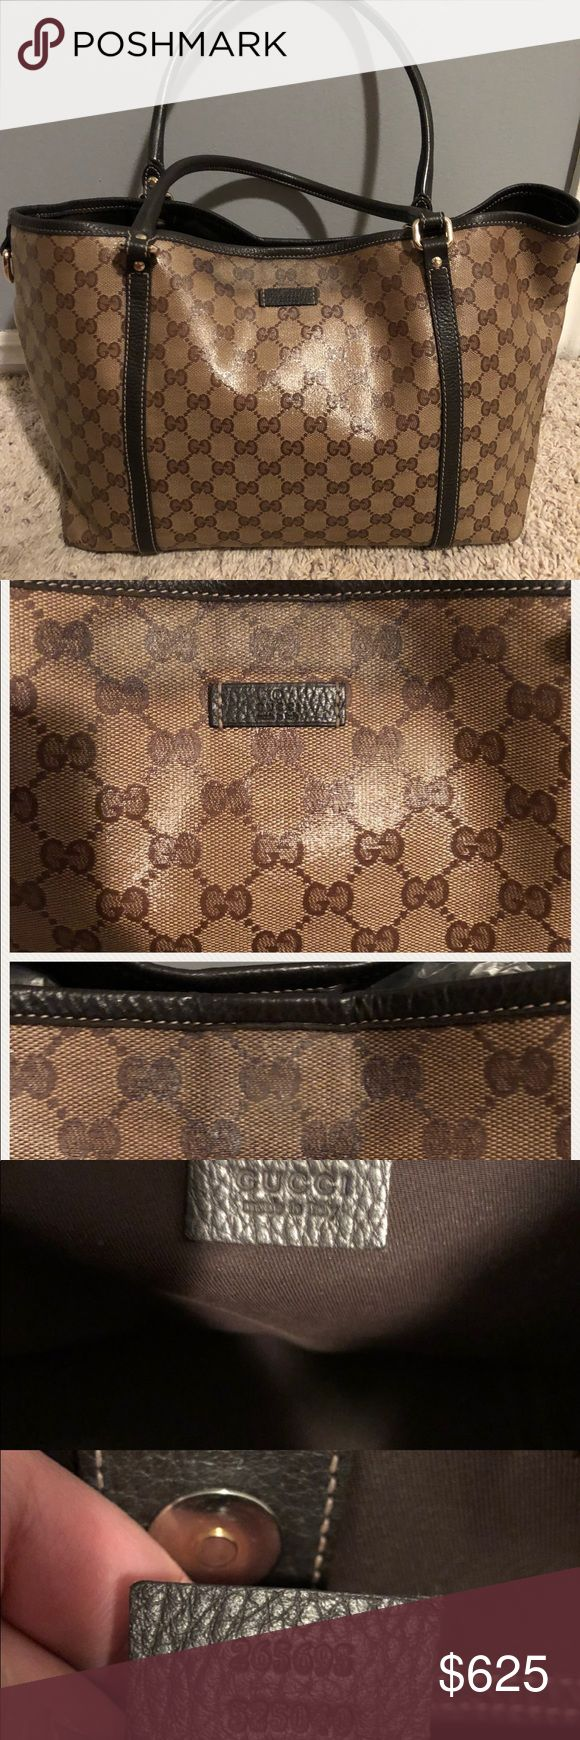 Authentic Gucci Crystal Monogram Tote Medium size tote. Flaws are shown in the picture; darkened leather on the top where the magnetic closure button is front and back of purse. Cause is from rubbing on arm's sleeve when carrying. Comes with dustbag, sample leather of bag, and authenticity card. NO trades pls. Gucci Bags Totes